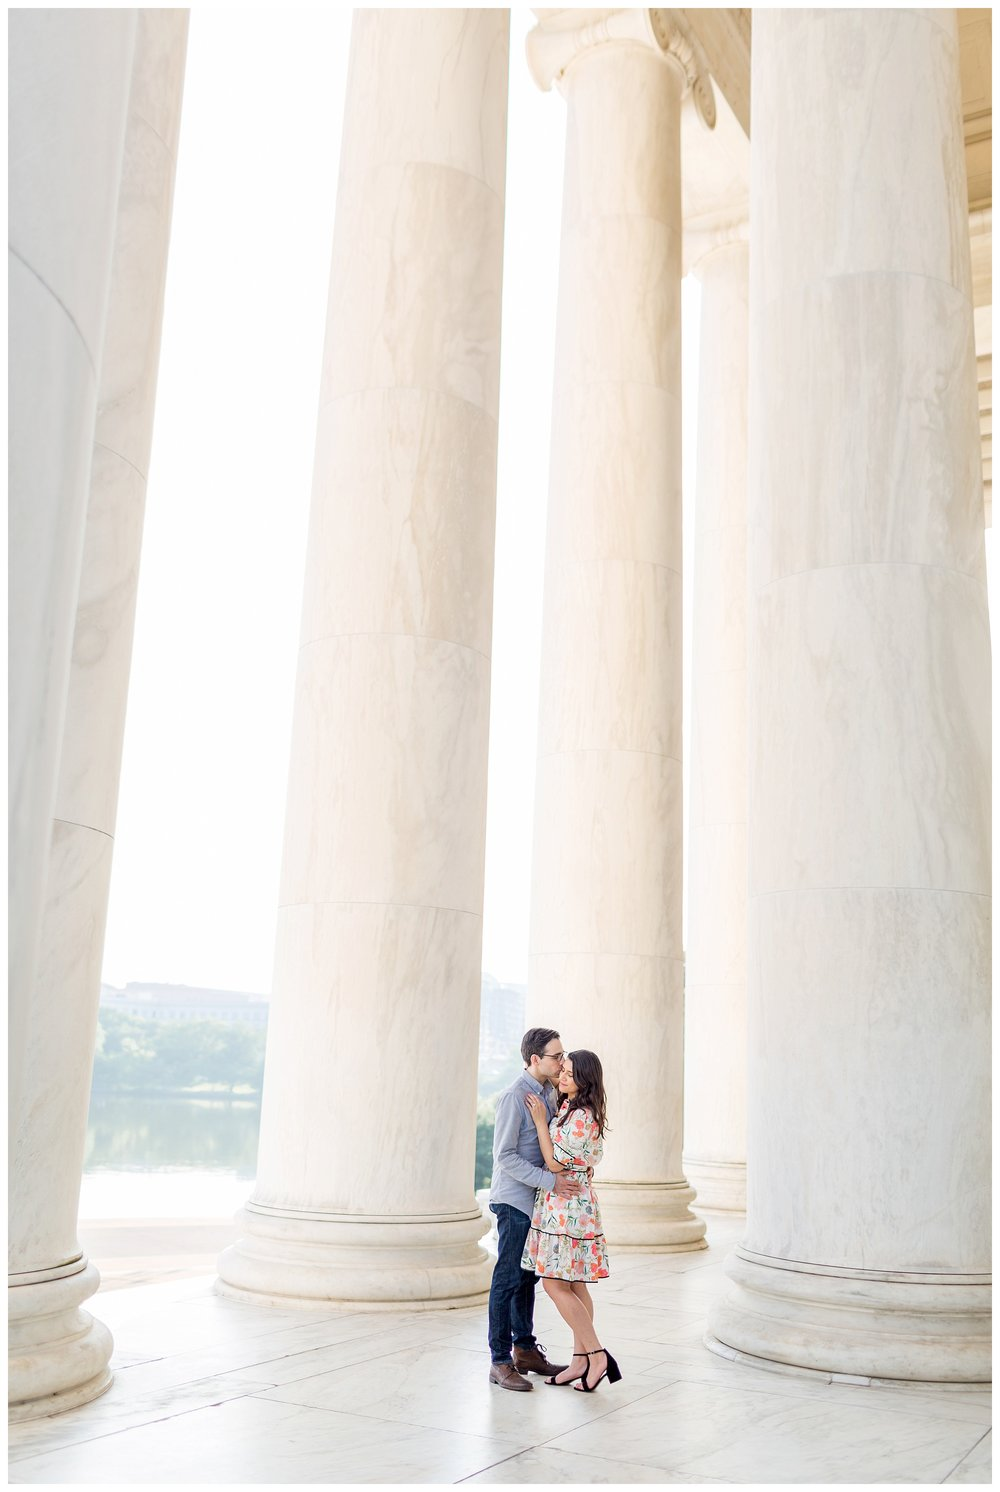 Capitol Hill Engagement Photos DC Wedding Photographer Kir Tuben_0028.jpg